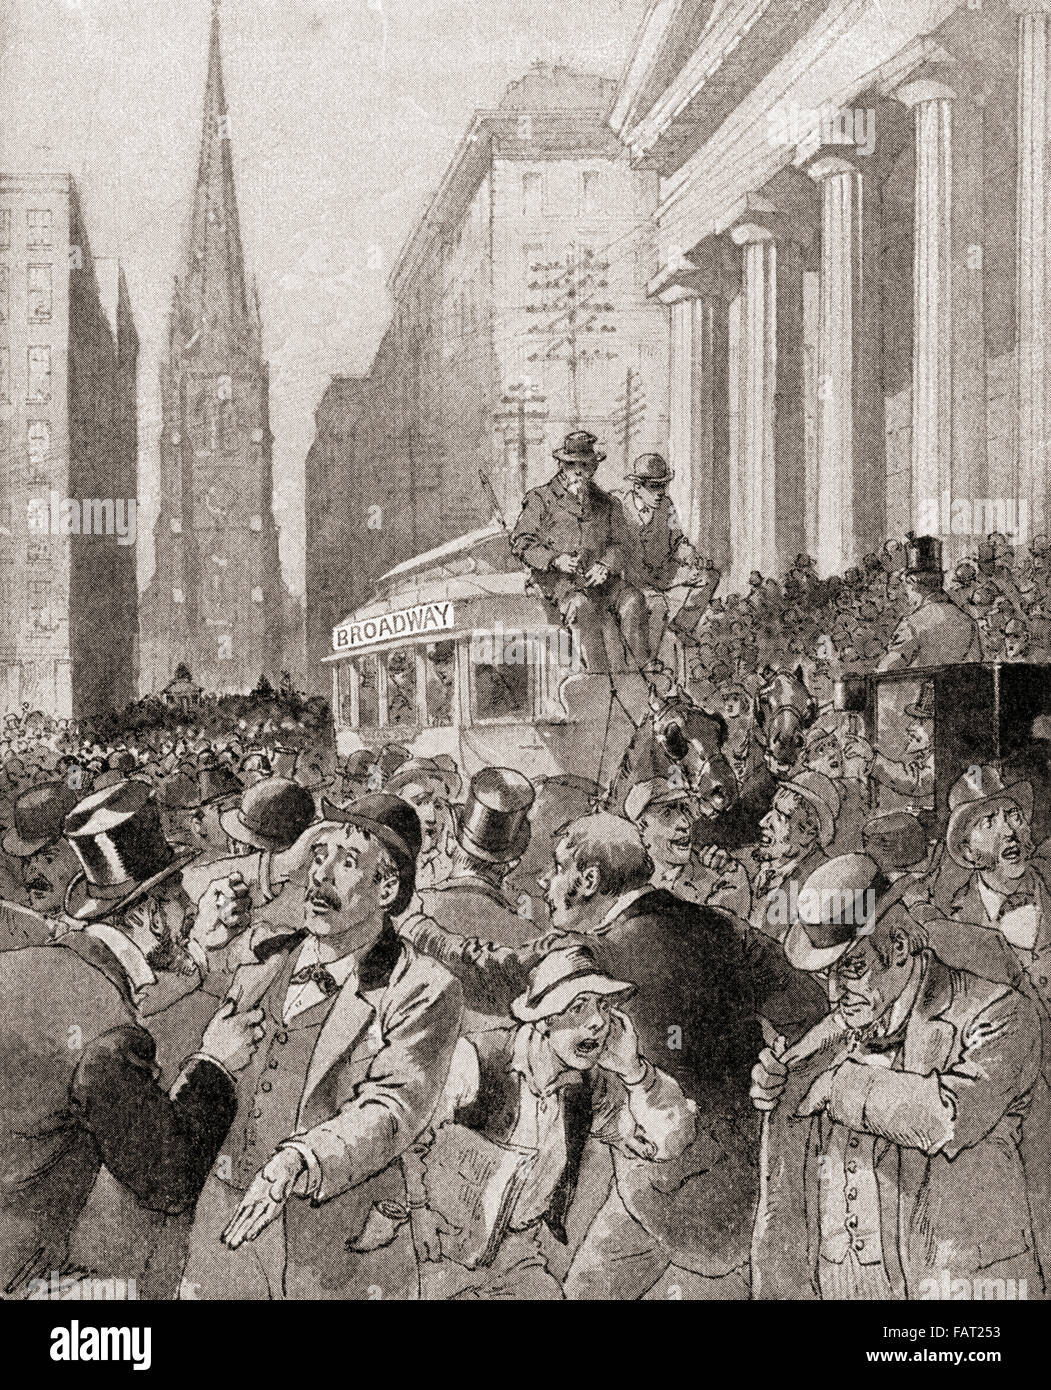 Black Friday in Wall Street, New York, United States of America 1869, when  the price of gold collapsed due to the speculators Jay Gould and James Fisk  who ...